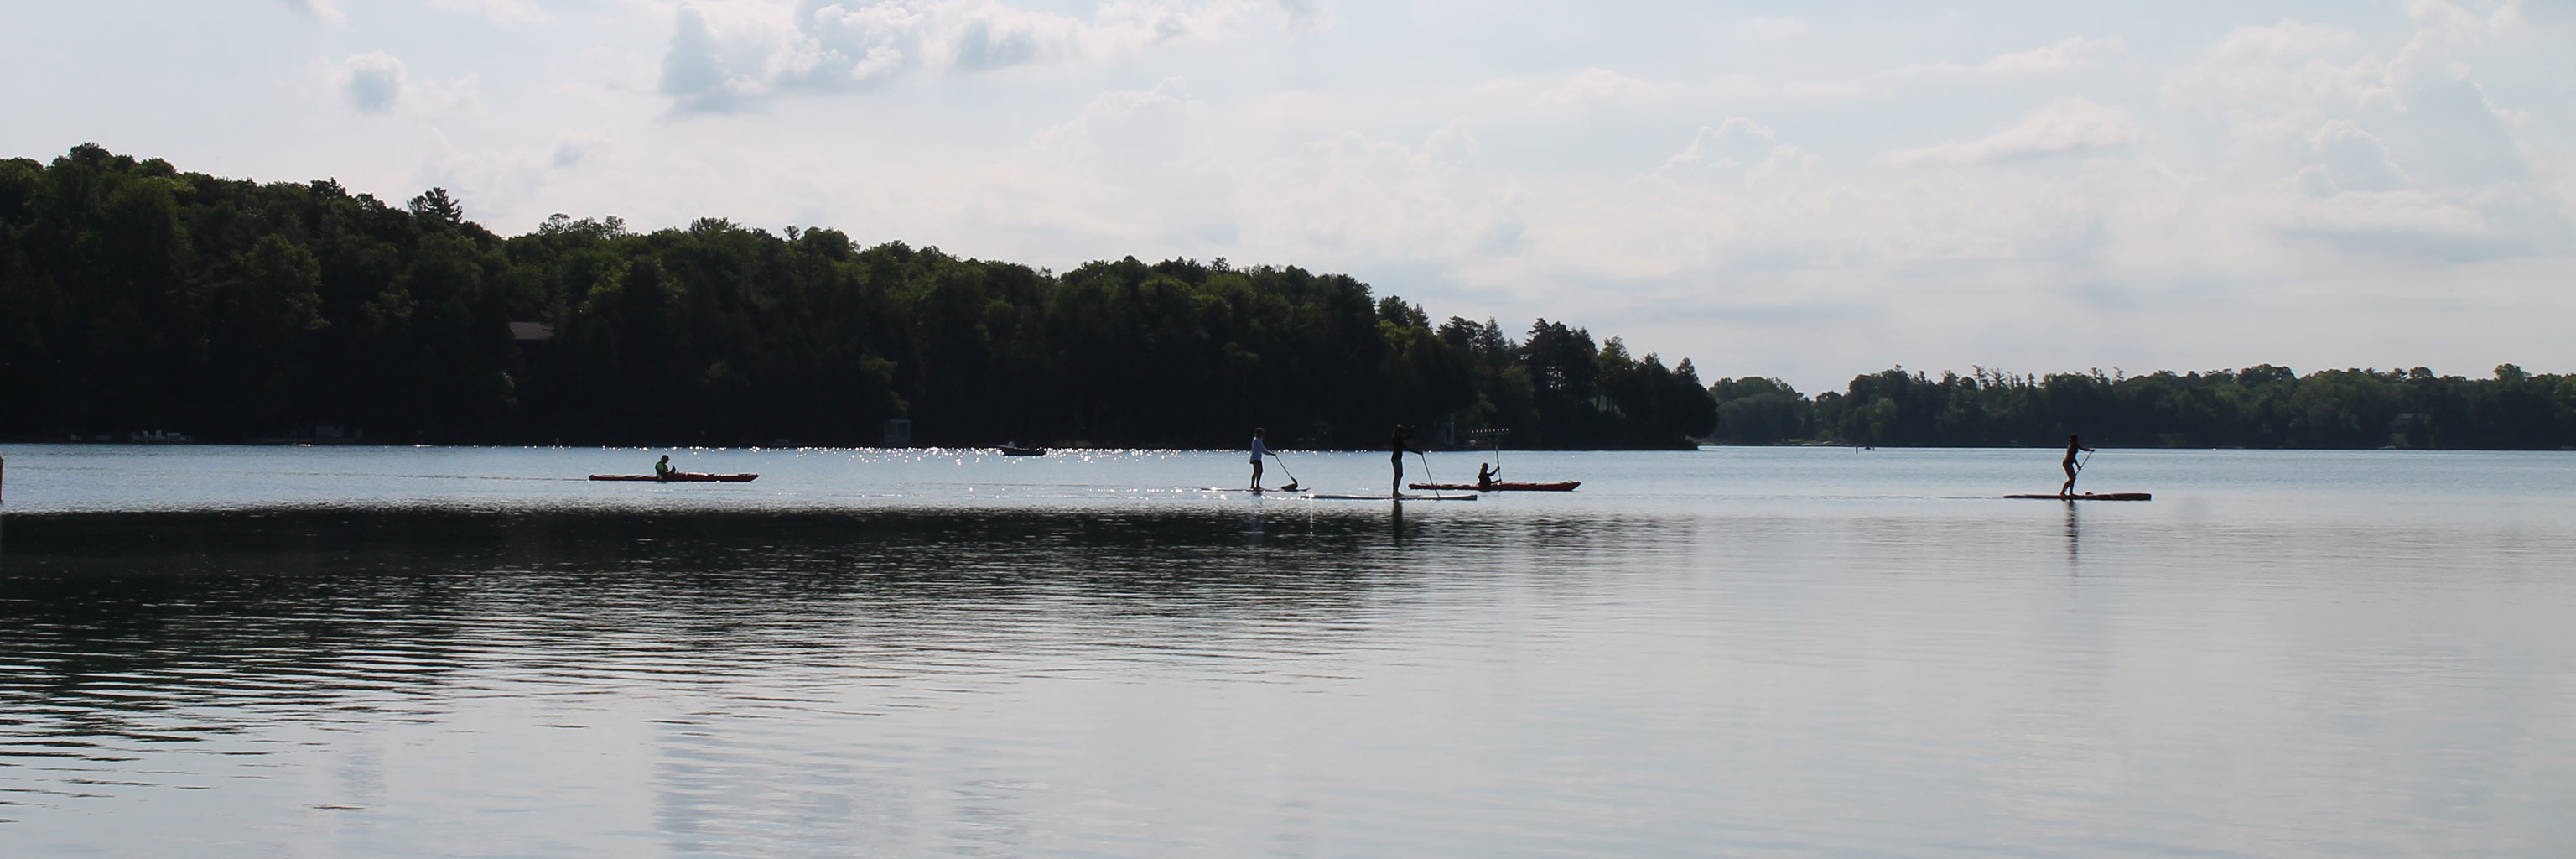 students paddle boarding on Elkhart Lake